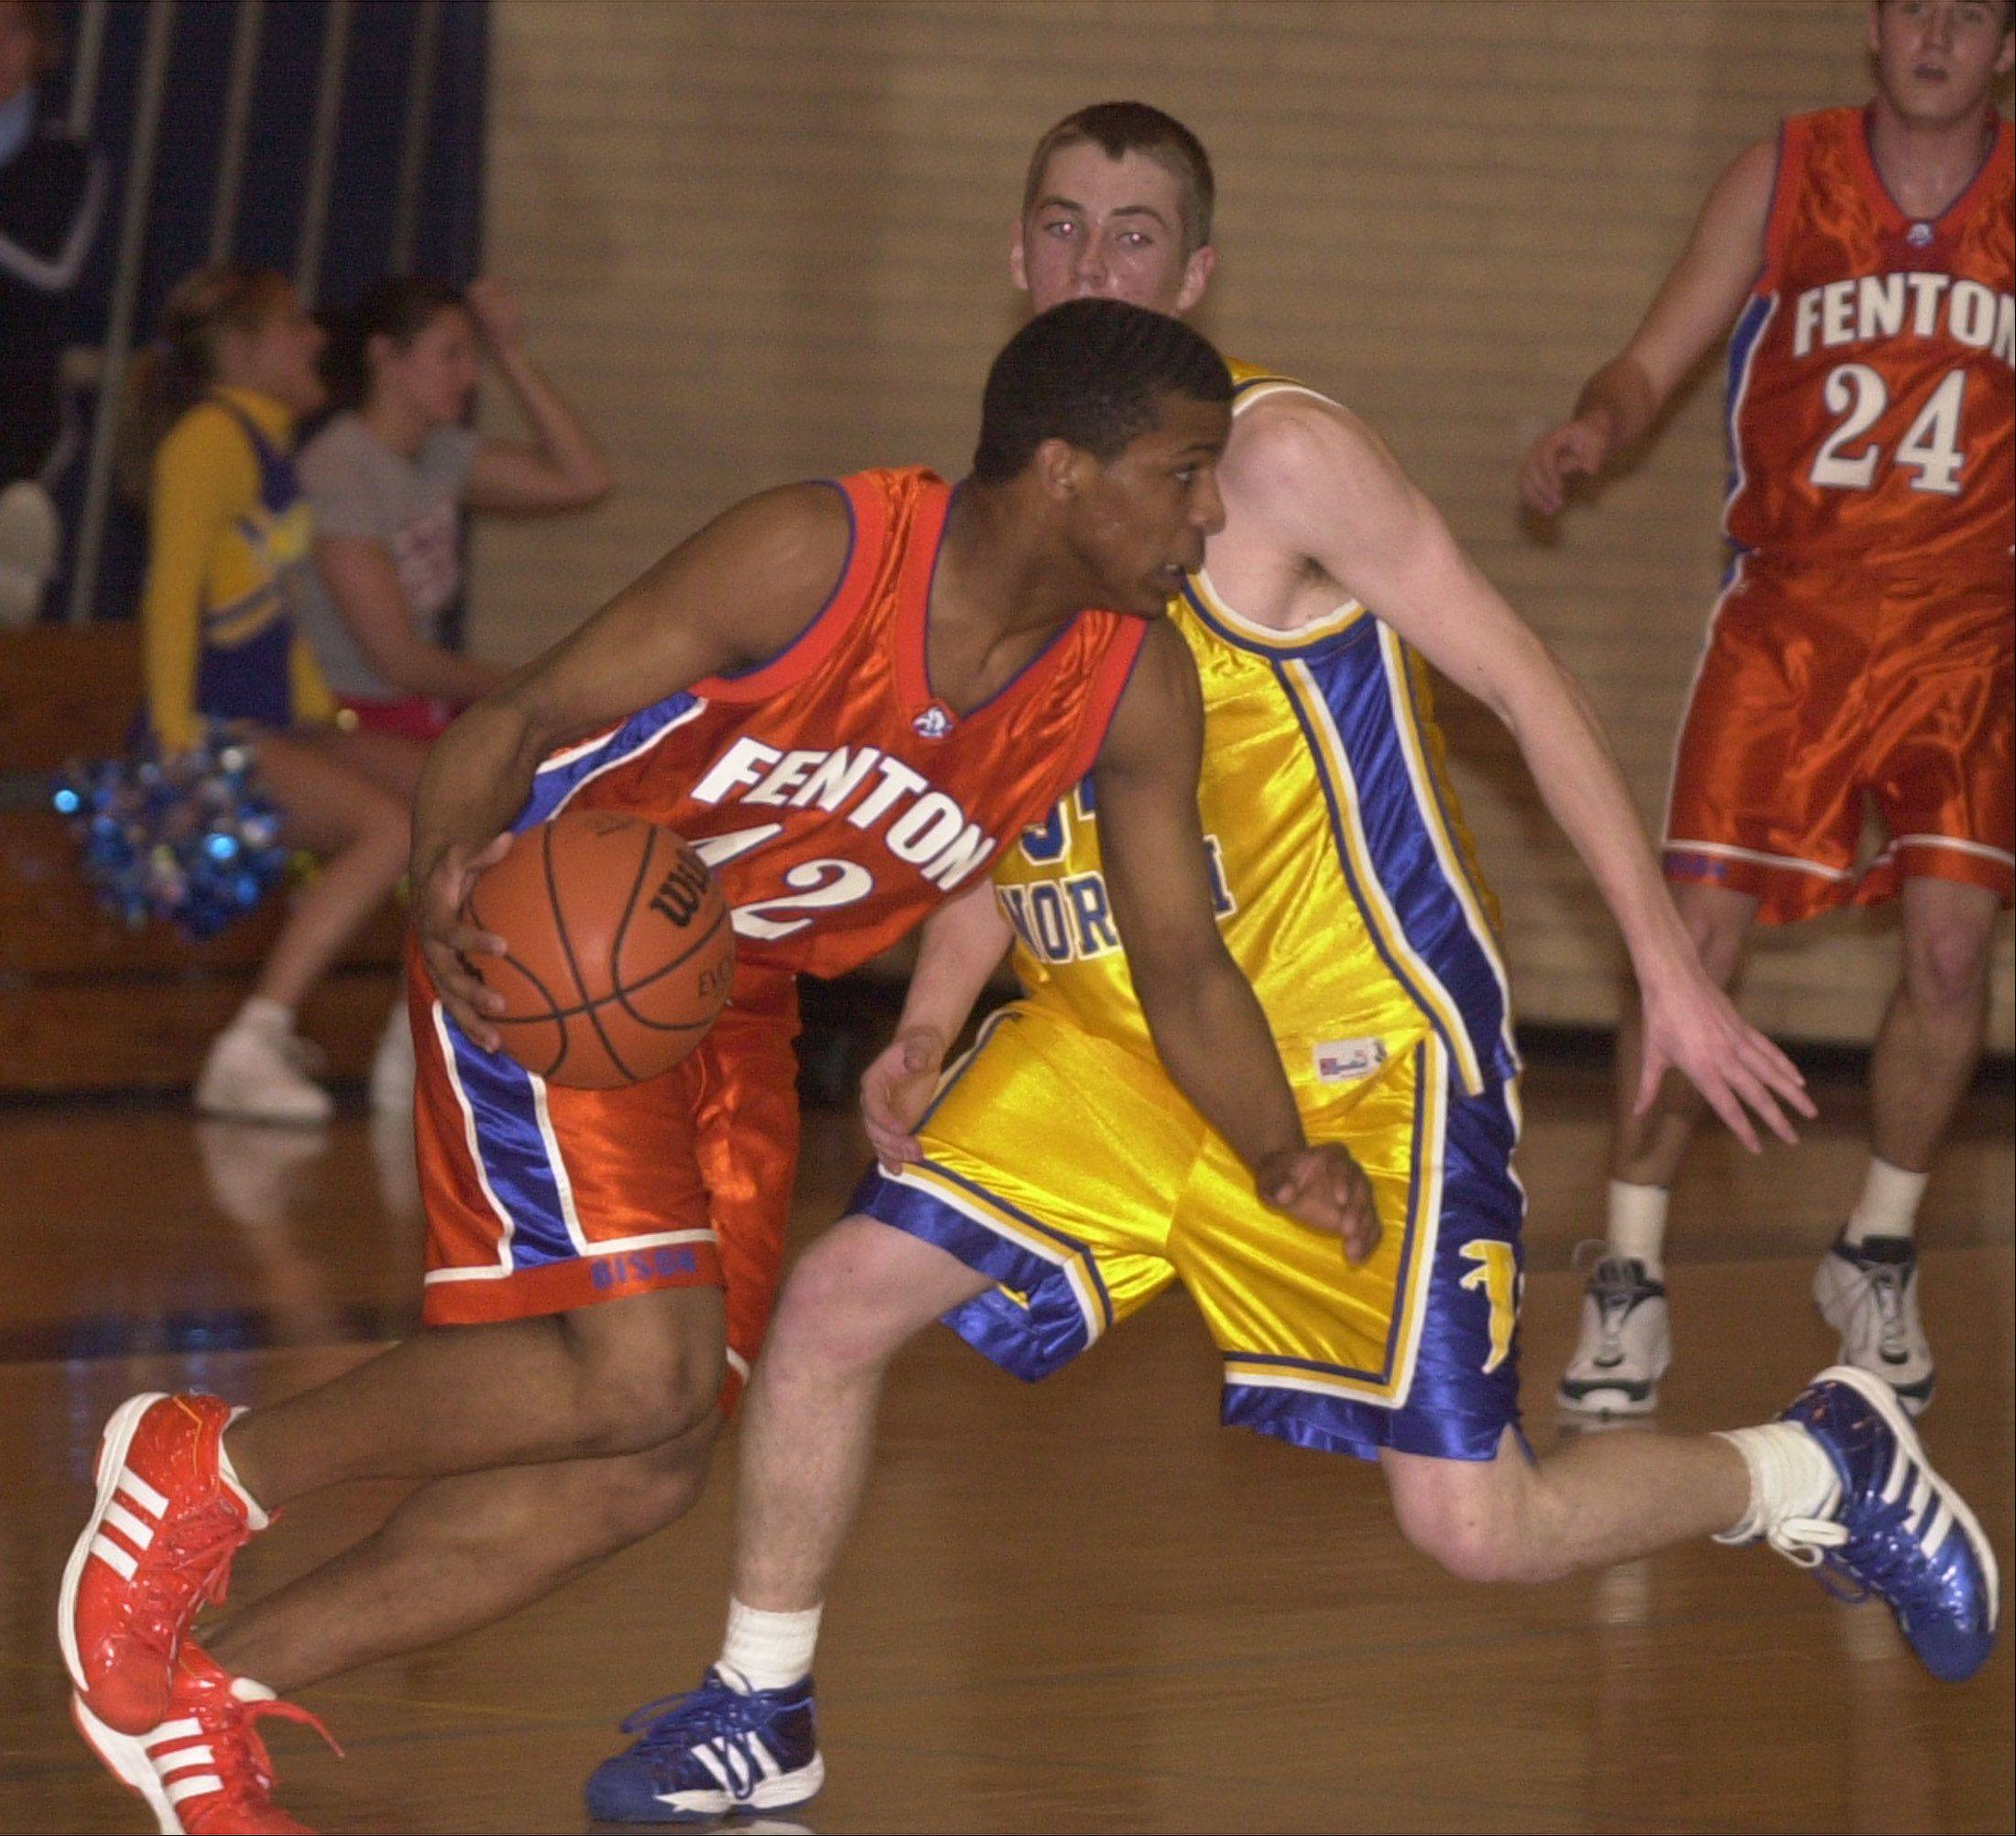 Richard Oruche of Fenton moves the ball against Wheaton North in 2004. Oruche will compete with Nigeria in the 2012 London games.